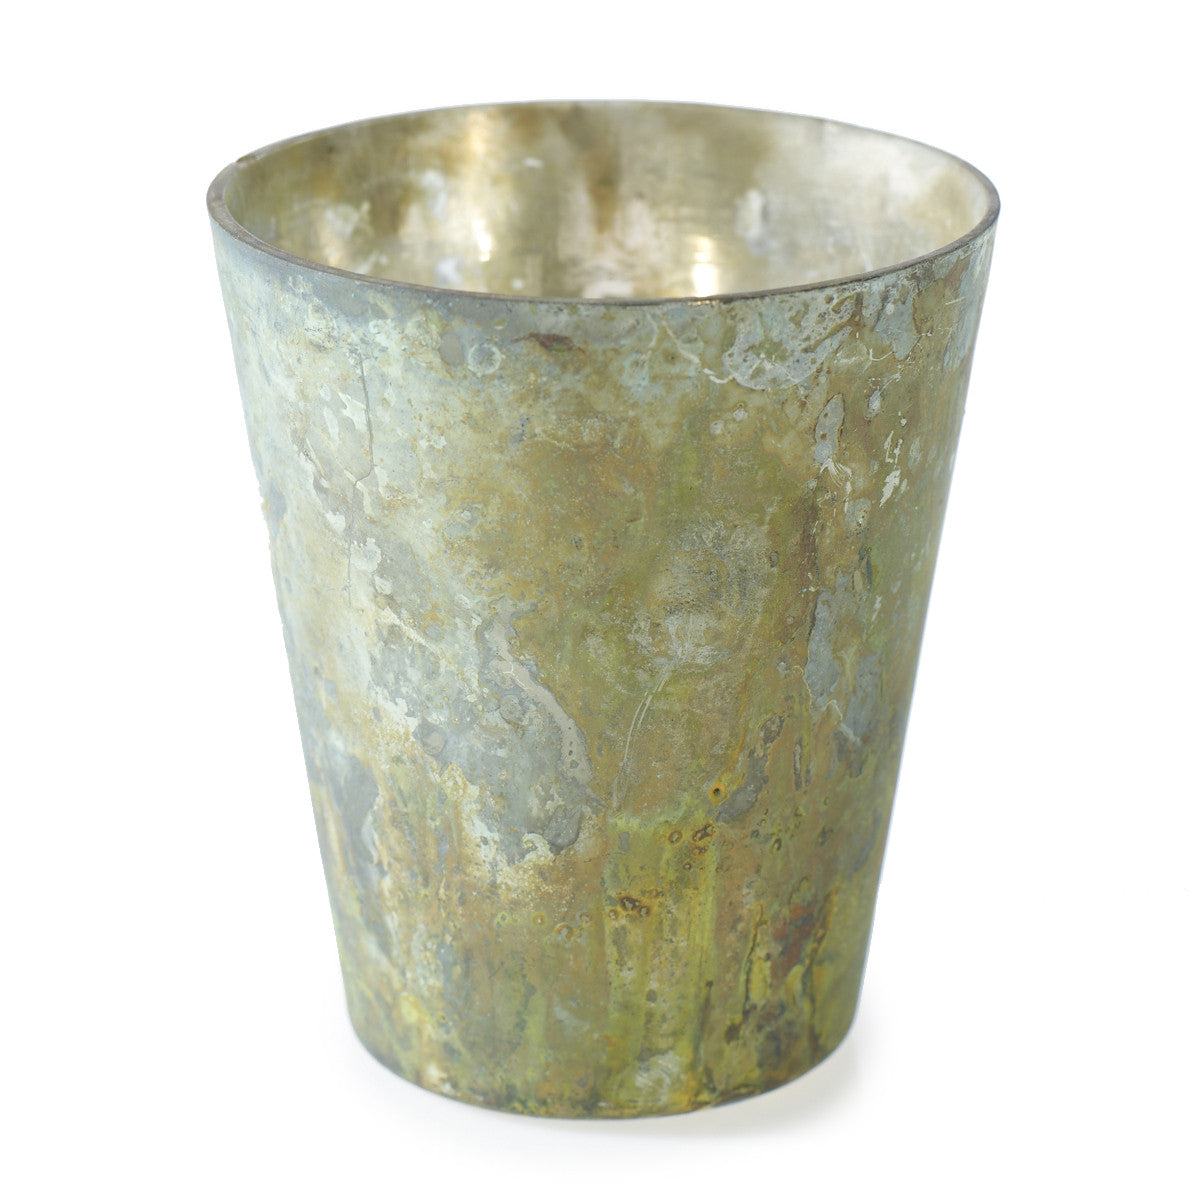 Via flora diy centerpieces with flair for weddings or dinner parties 35 x 4 inchespatina celadon green reviewsmspy